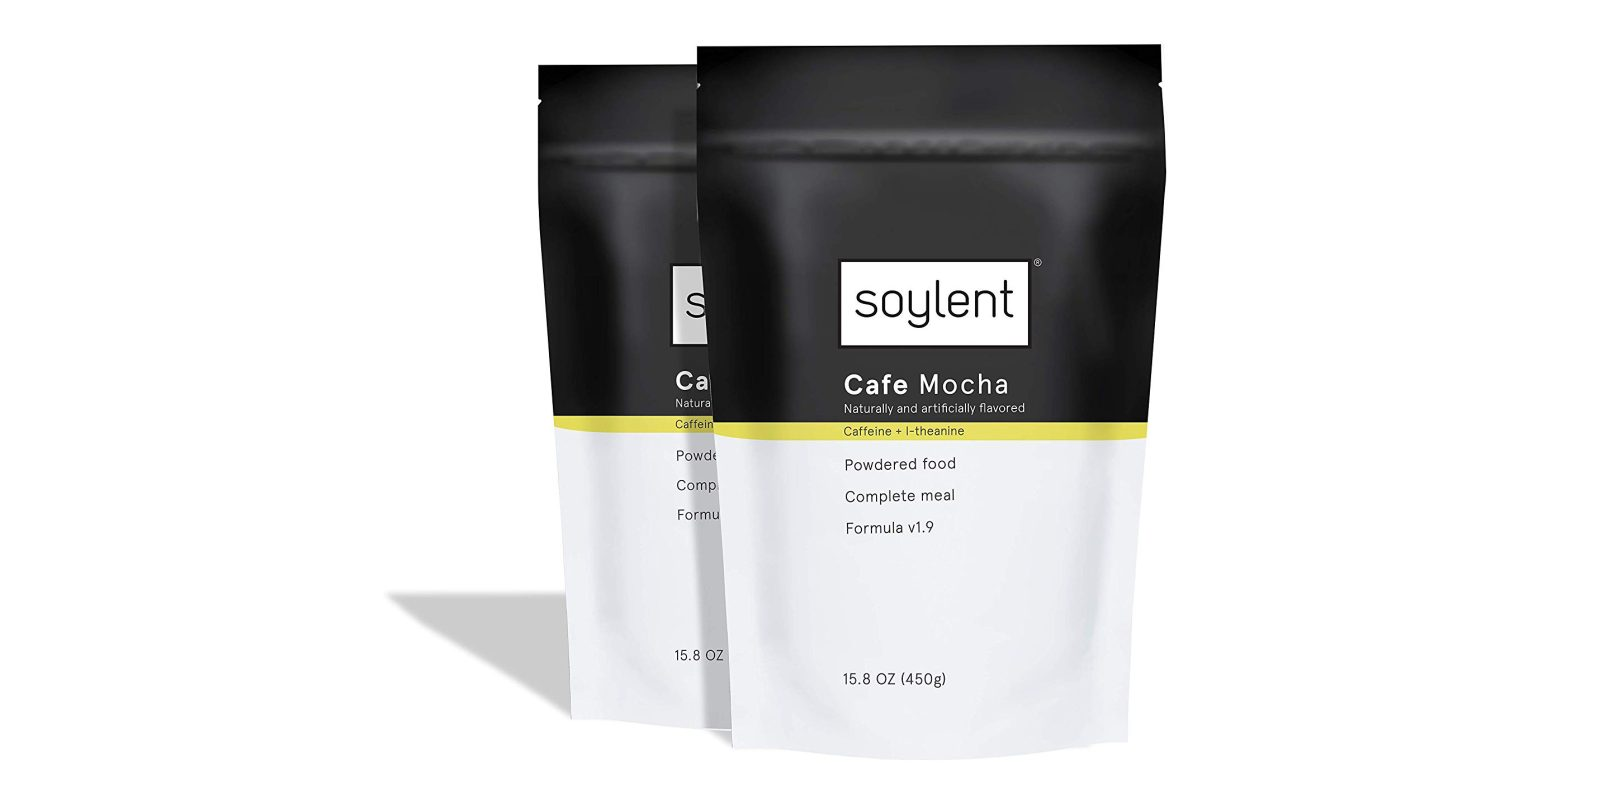 Take 50% off popular Soylent Powder meal replacements from $30.50 shipped